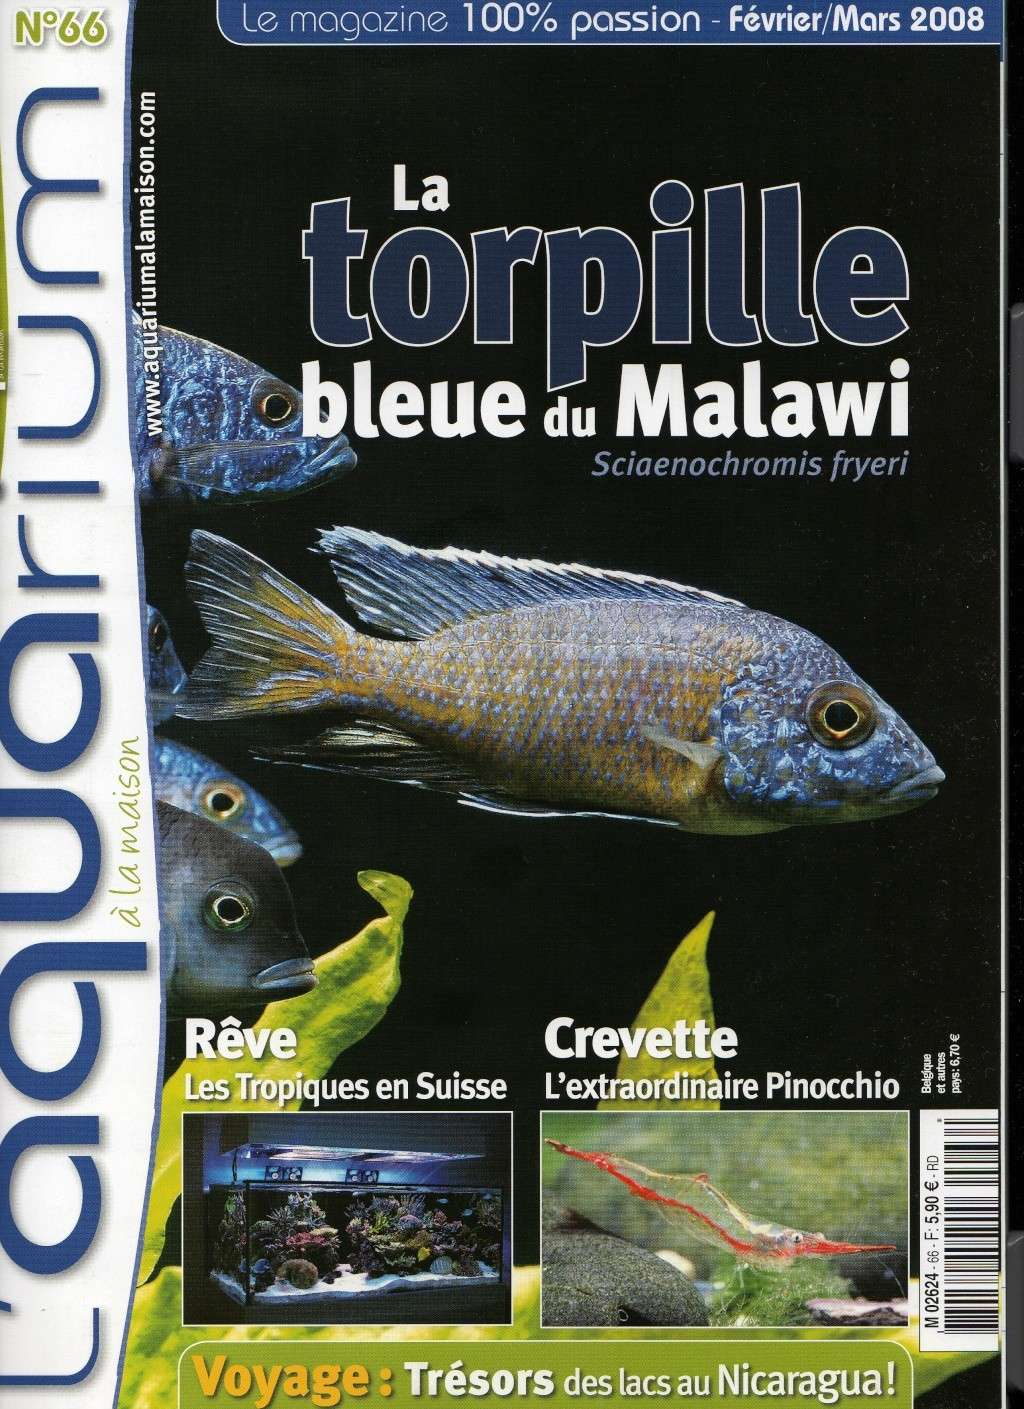 Article aquarium la maison n 66 for Aquarium a la maison pdf